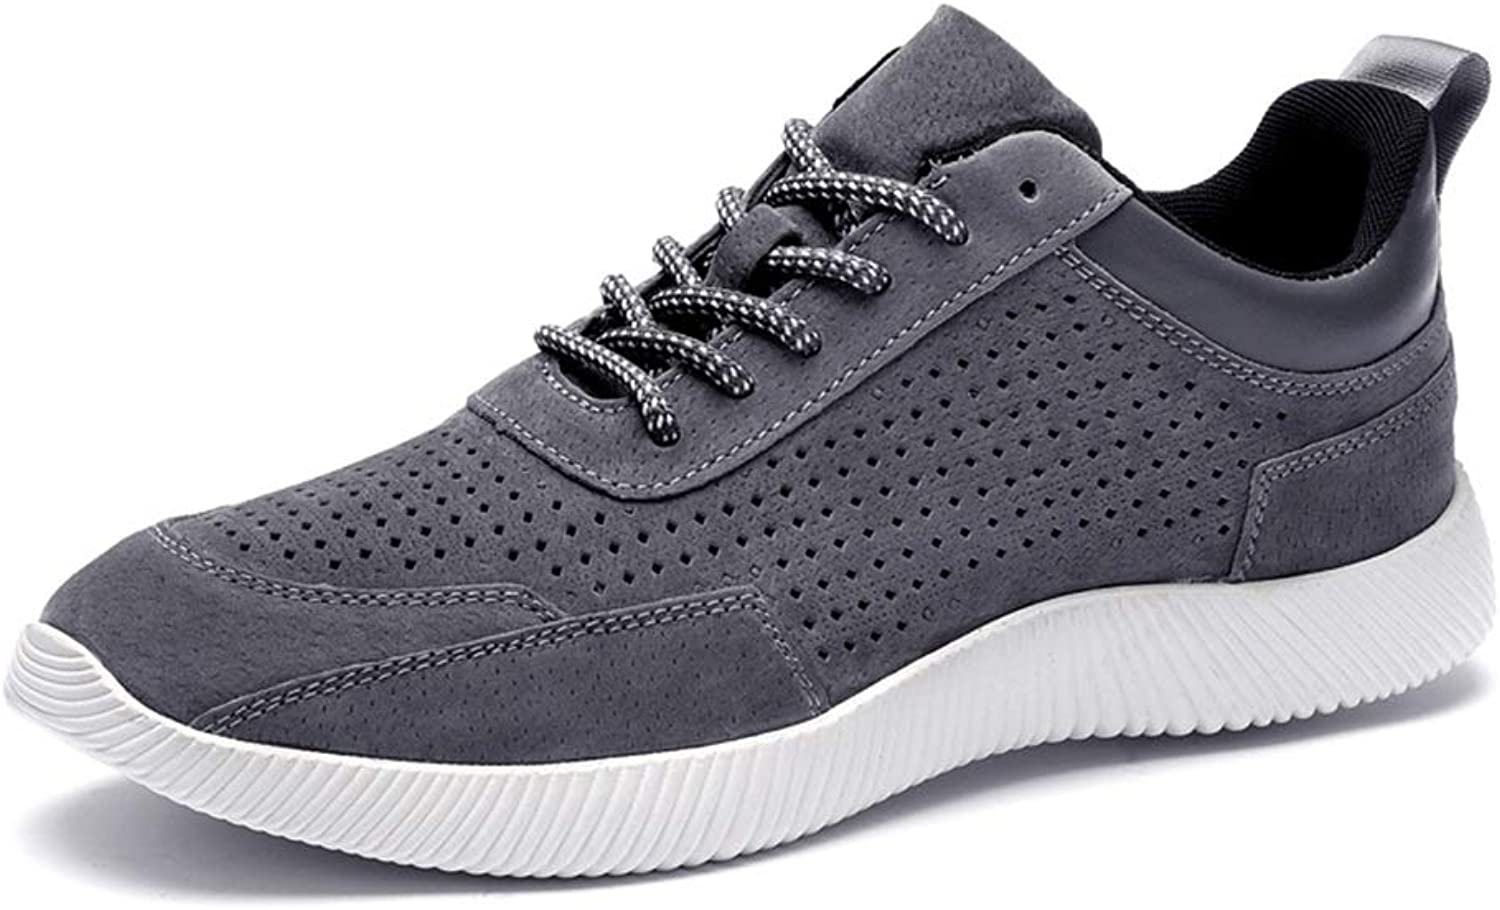 Hetai Men Athletic shoes Fashion Casual Comfortable Hollow Breathable Lightweight Lacing Up Sports shoes